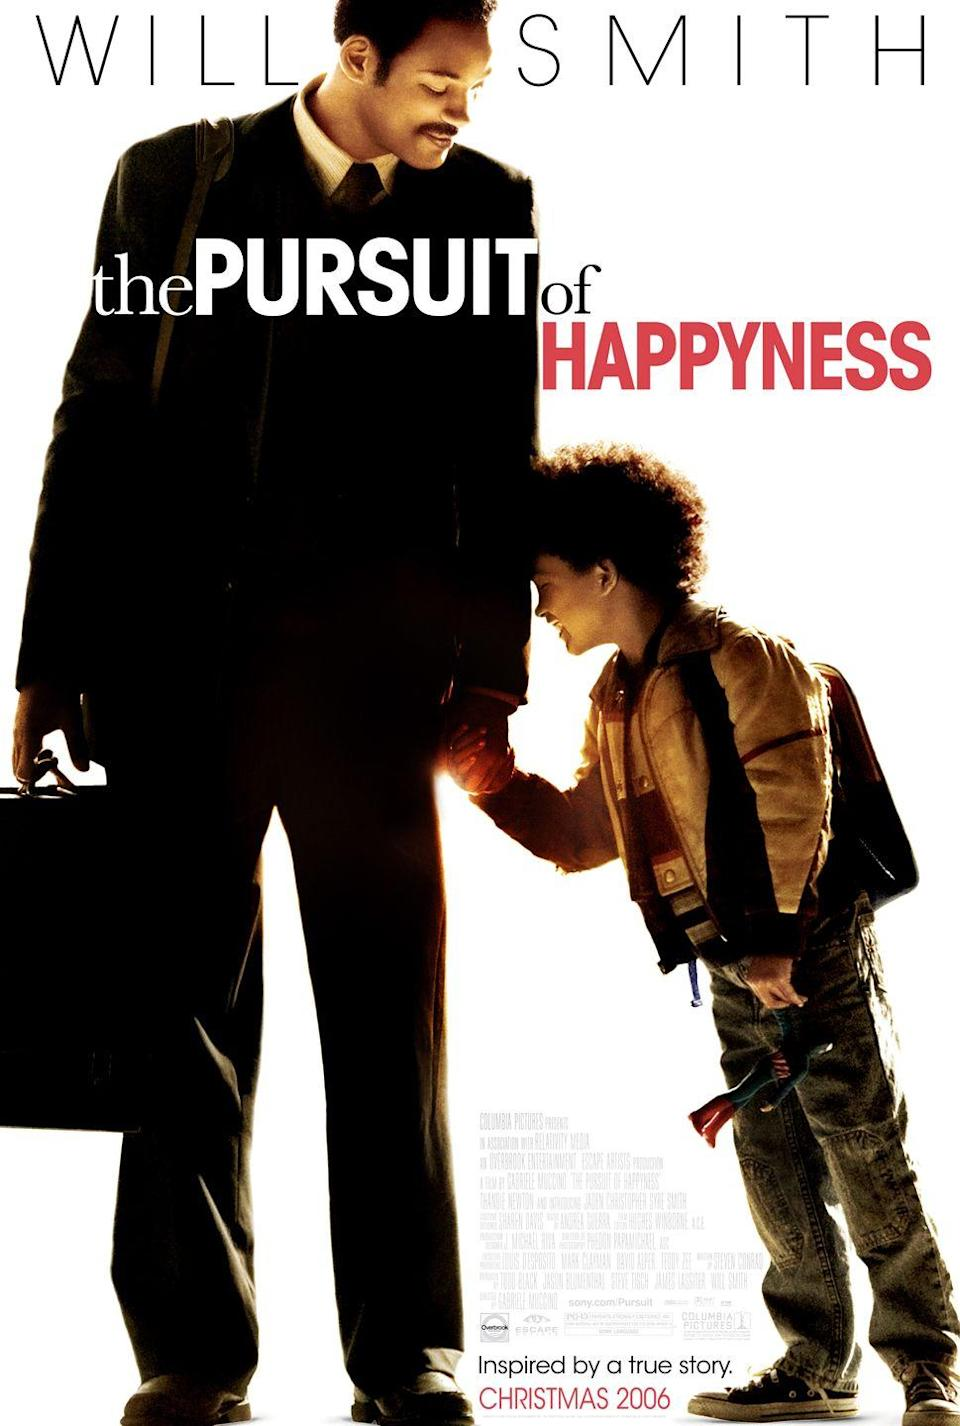 """<p><a class=""""link rapid-noclick-resp"""" href=""""https://www.amazon.com/Pursuit-Happyness-Will-Smith/dp/B000OW77UU/ref=sr_1_2?dchild=1&keywords=the+pursuit+of+happyness&qid=1614179695&sr=8-2&tag=syn-yahoo-20&ascsubtag=%5Bartid%7C10063.g.35716832%5Bsrc%7Cyahoo-us"""" rel=""""nofollow noopener"""" target=""""_blank"""" data-ylk=""""slk:Watch Now"""">Watch Now</a></p><p>Based on the true story of Chris Gardner, a homeless father who raised his son while aspiring to be—and eventually become—a stock broker. <em>The Pursuit of Happyness</em> is a heart wrenching film that details how this one man battled with losing his home, navigating a new career, and keeping his son in good spirits amidst the chaos of life.</p>"""